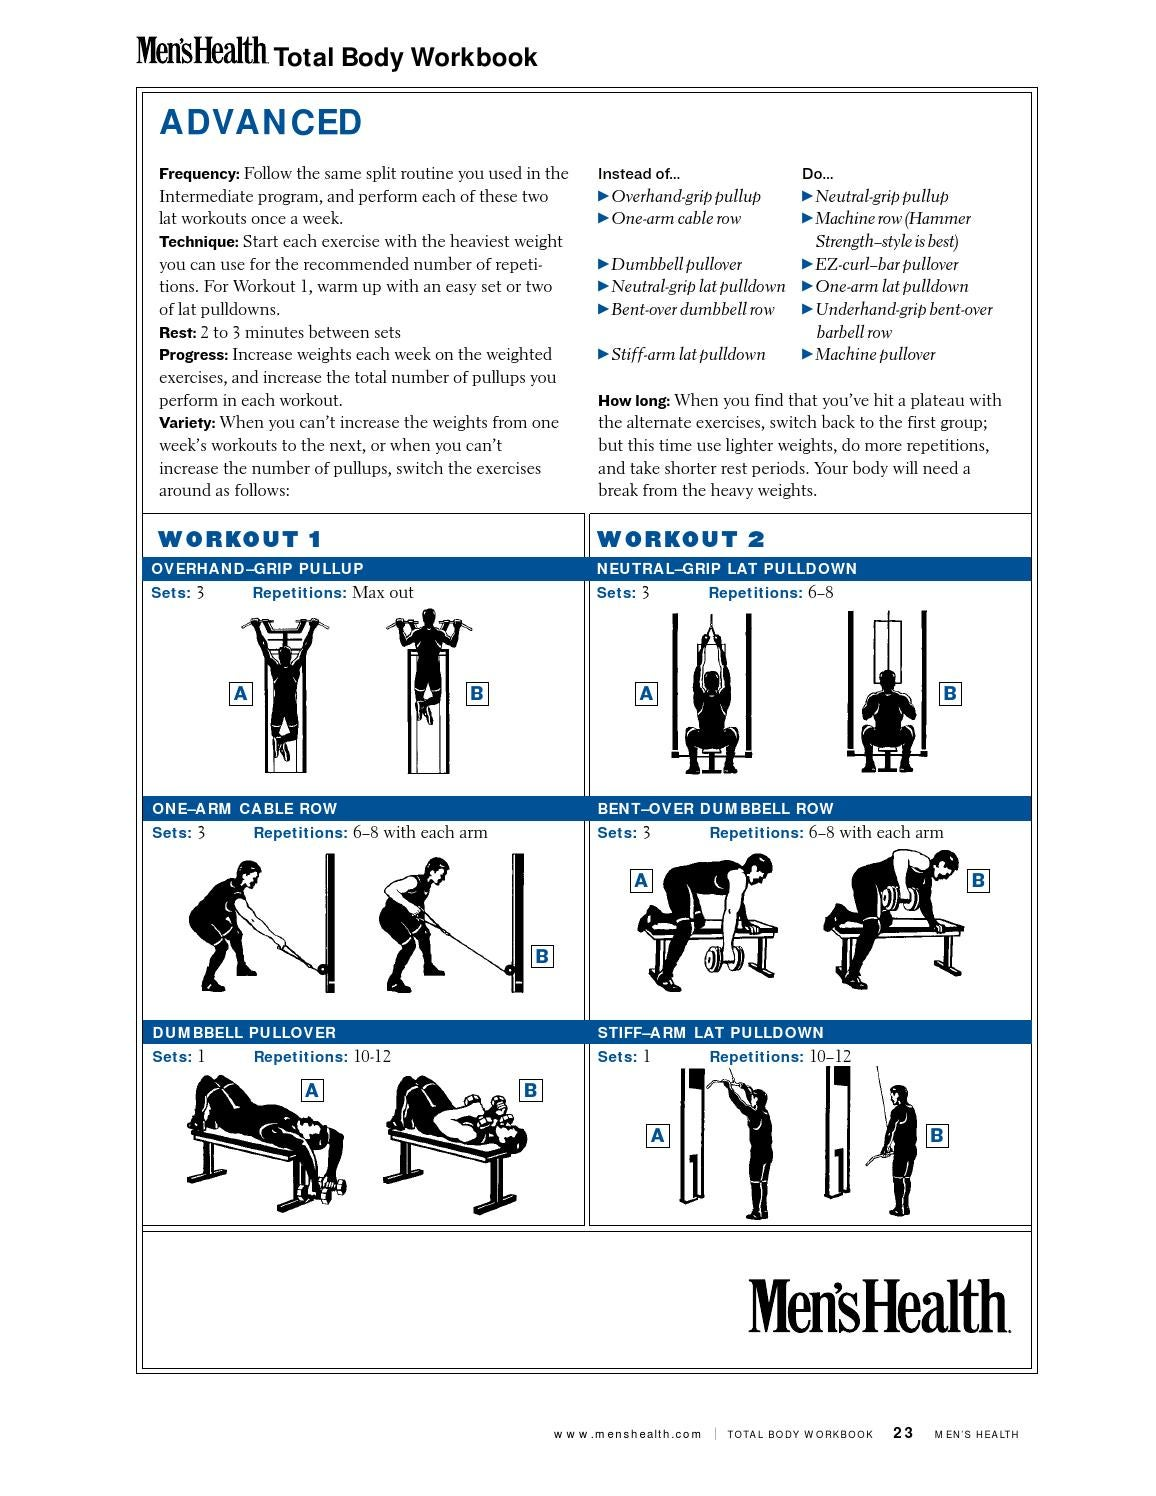 How Can a Full Body Workout for Men Help Me Gain Muscle?